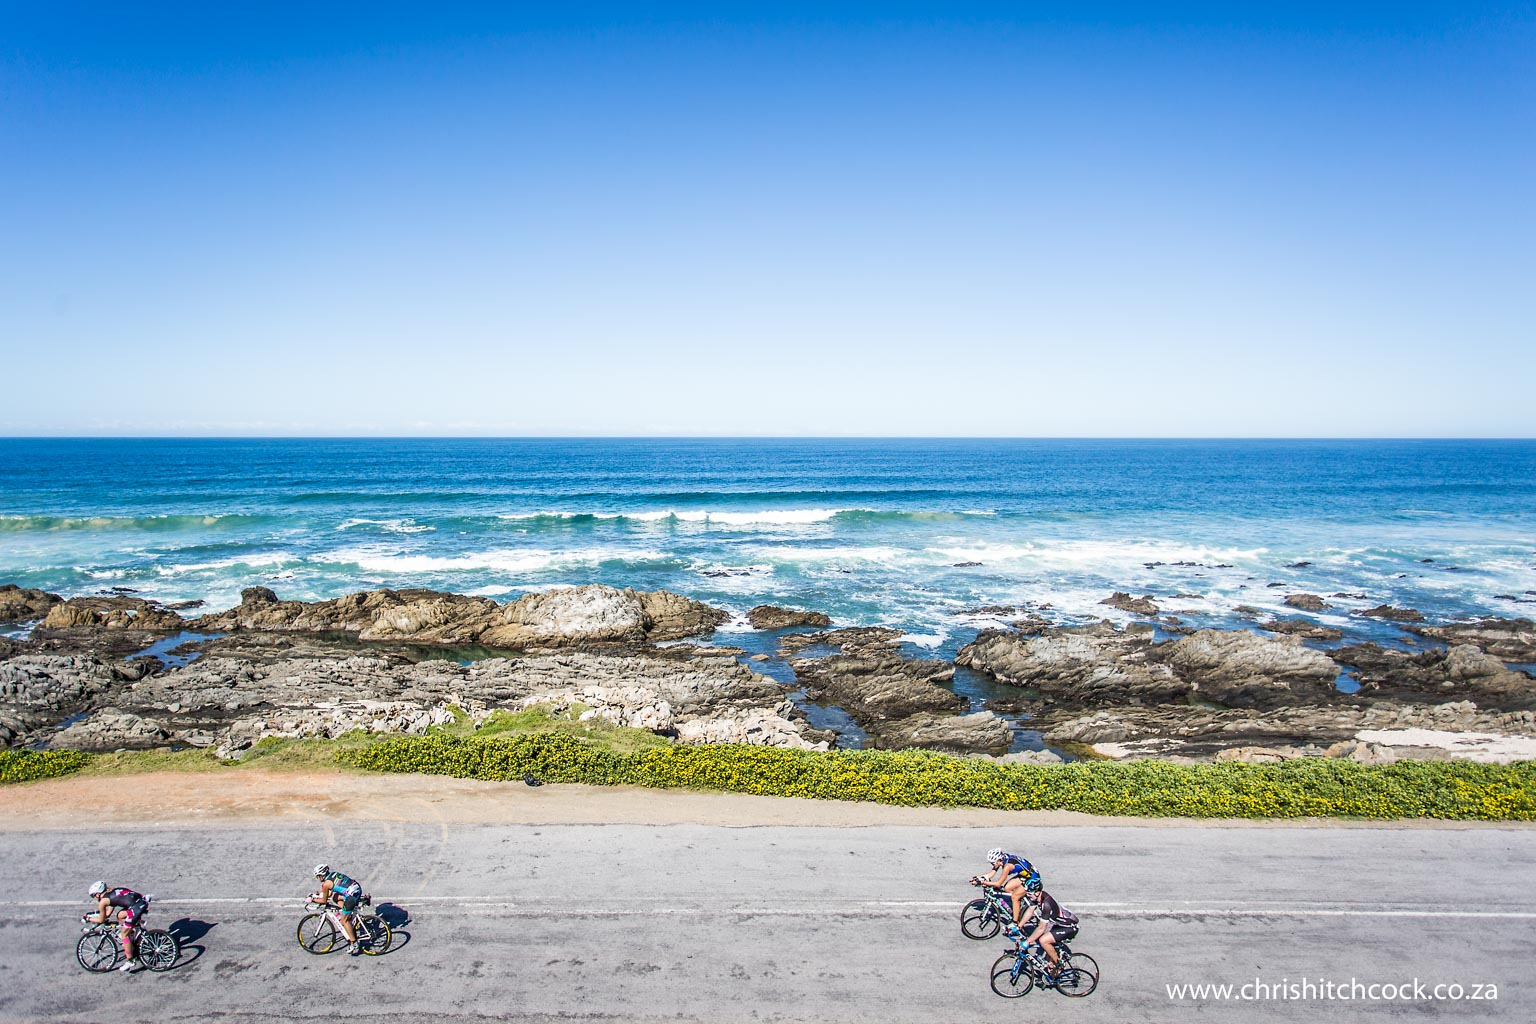 40km before the start/finish line riders battle into the head wind, known locally as the 'Beasterly Easterly'. I climbed up the dunes next to the road to get a more panoramic view of the riders and surf using a wide angle lens.